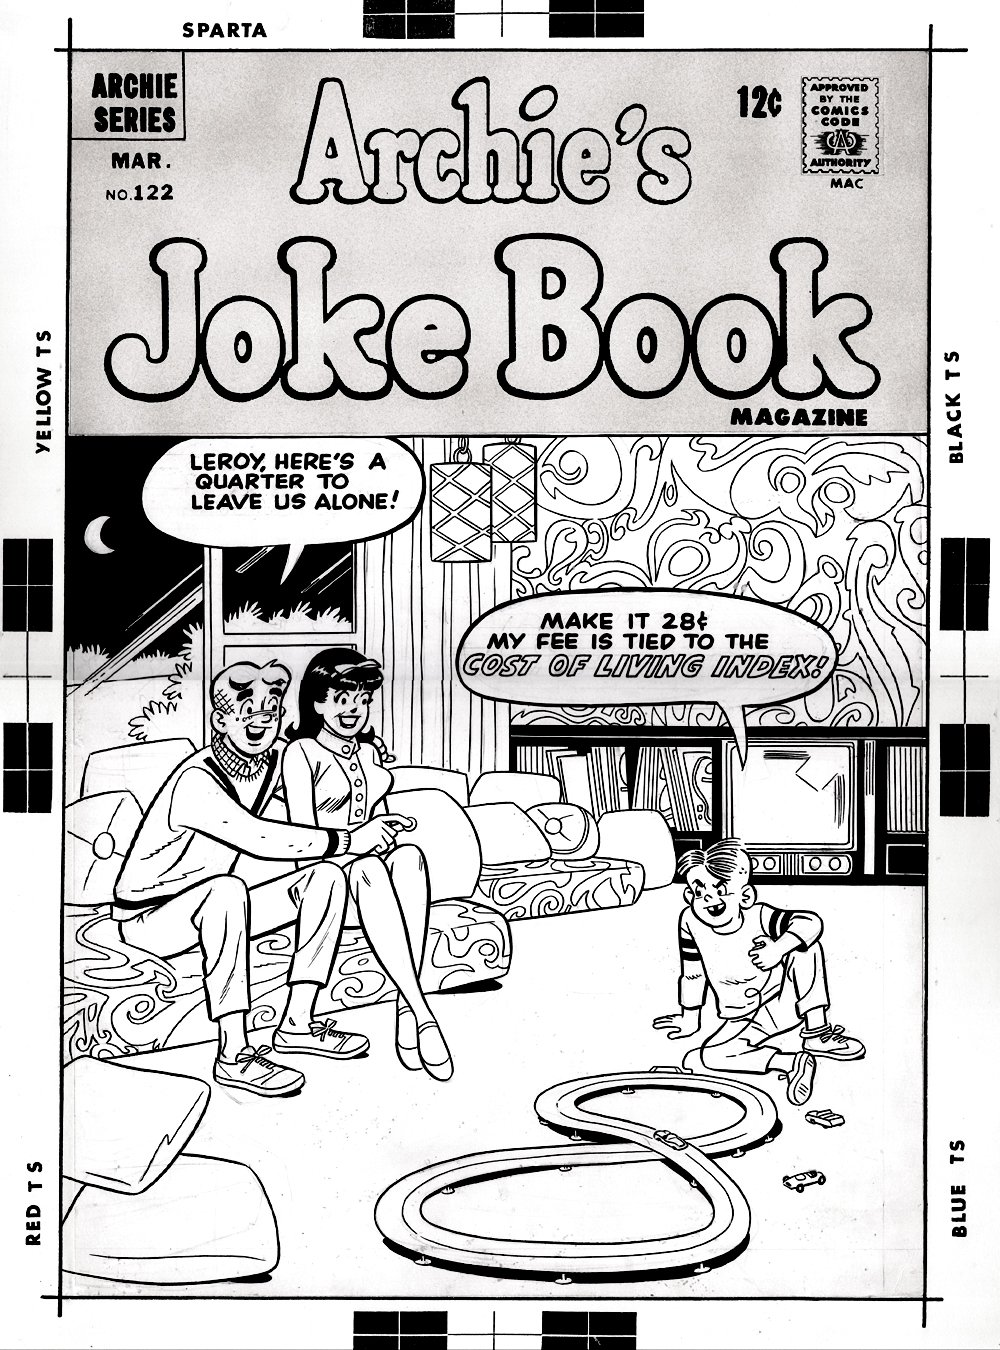 Archie's Joke Book Magazine #122 Cover (LARGE SILVER AGE COVER) 1967